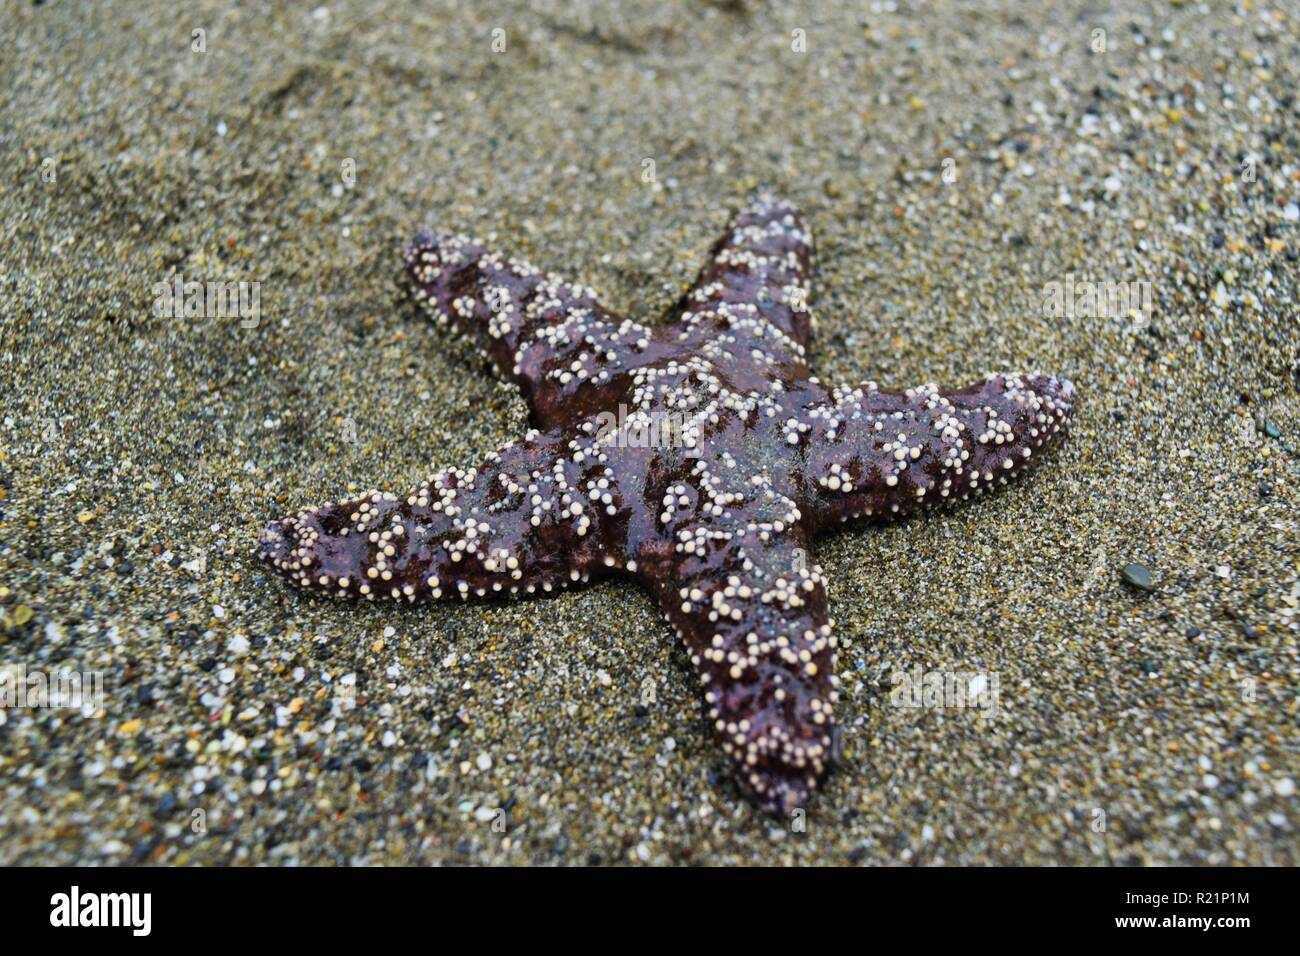 Close Up of Starfish in Tide Pool - Stock Image